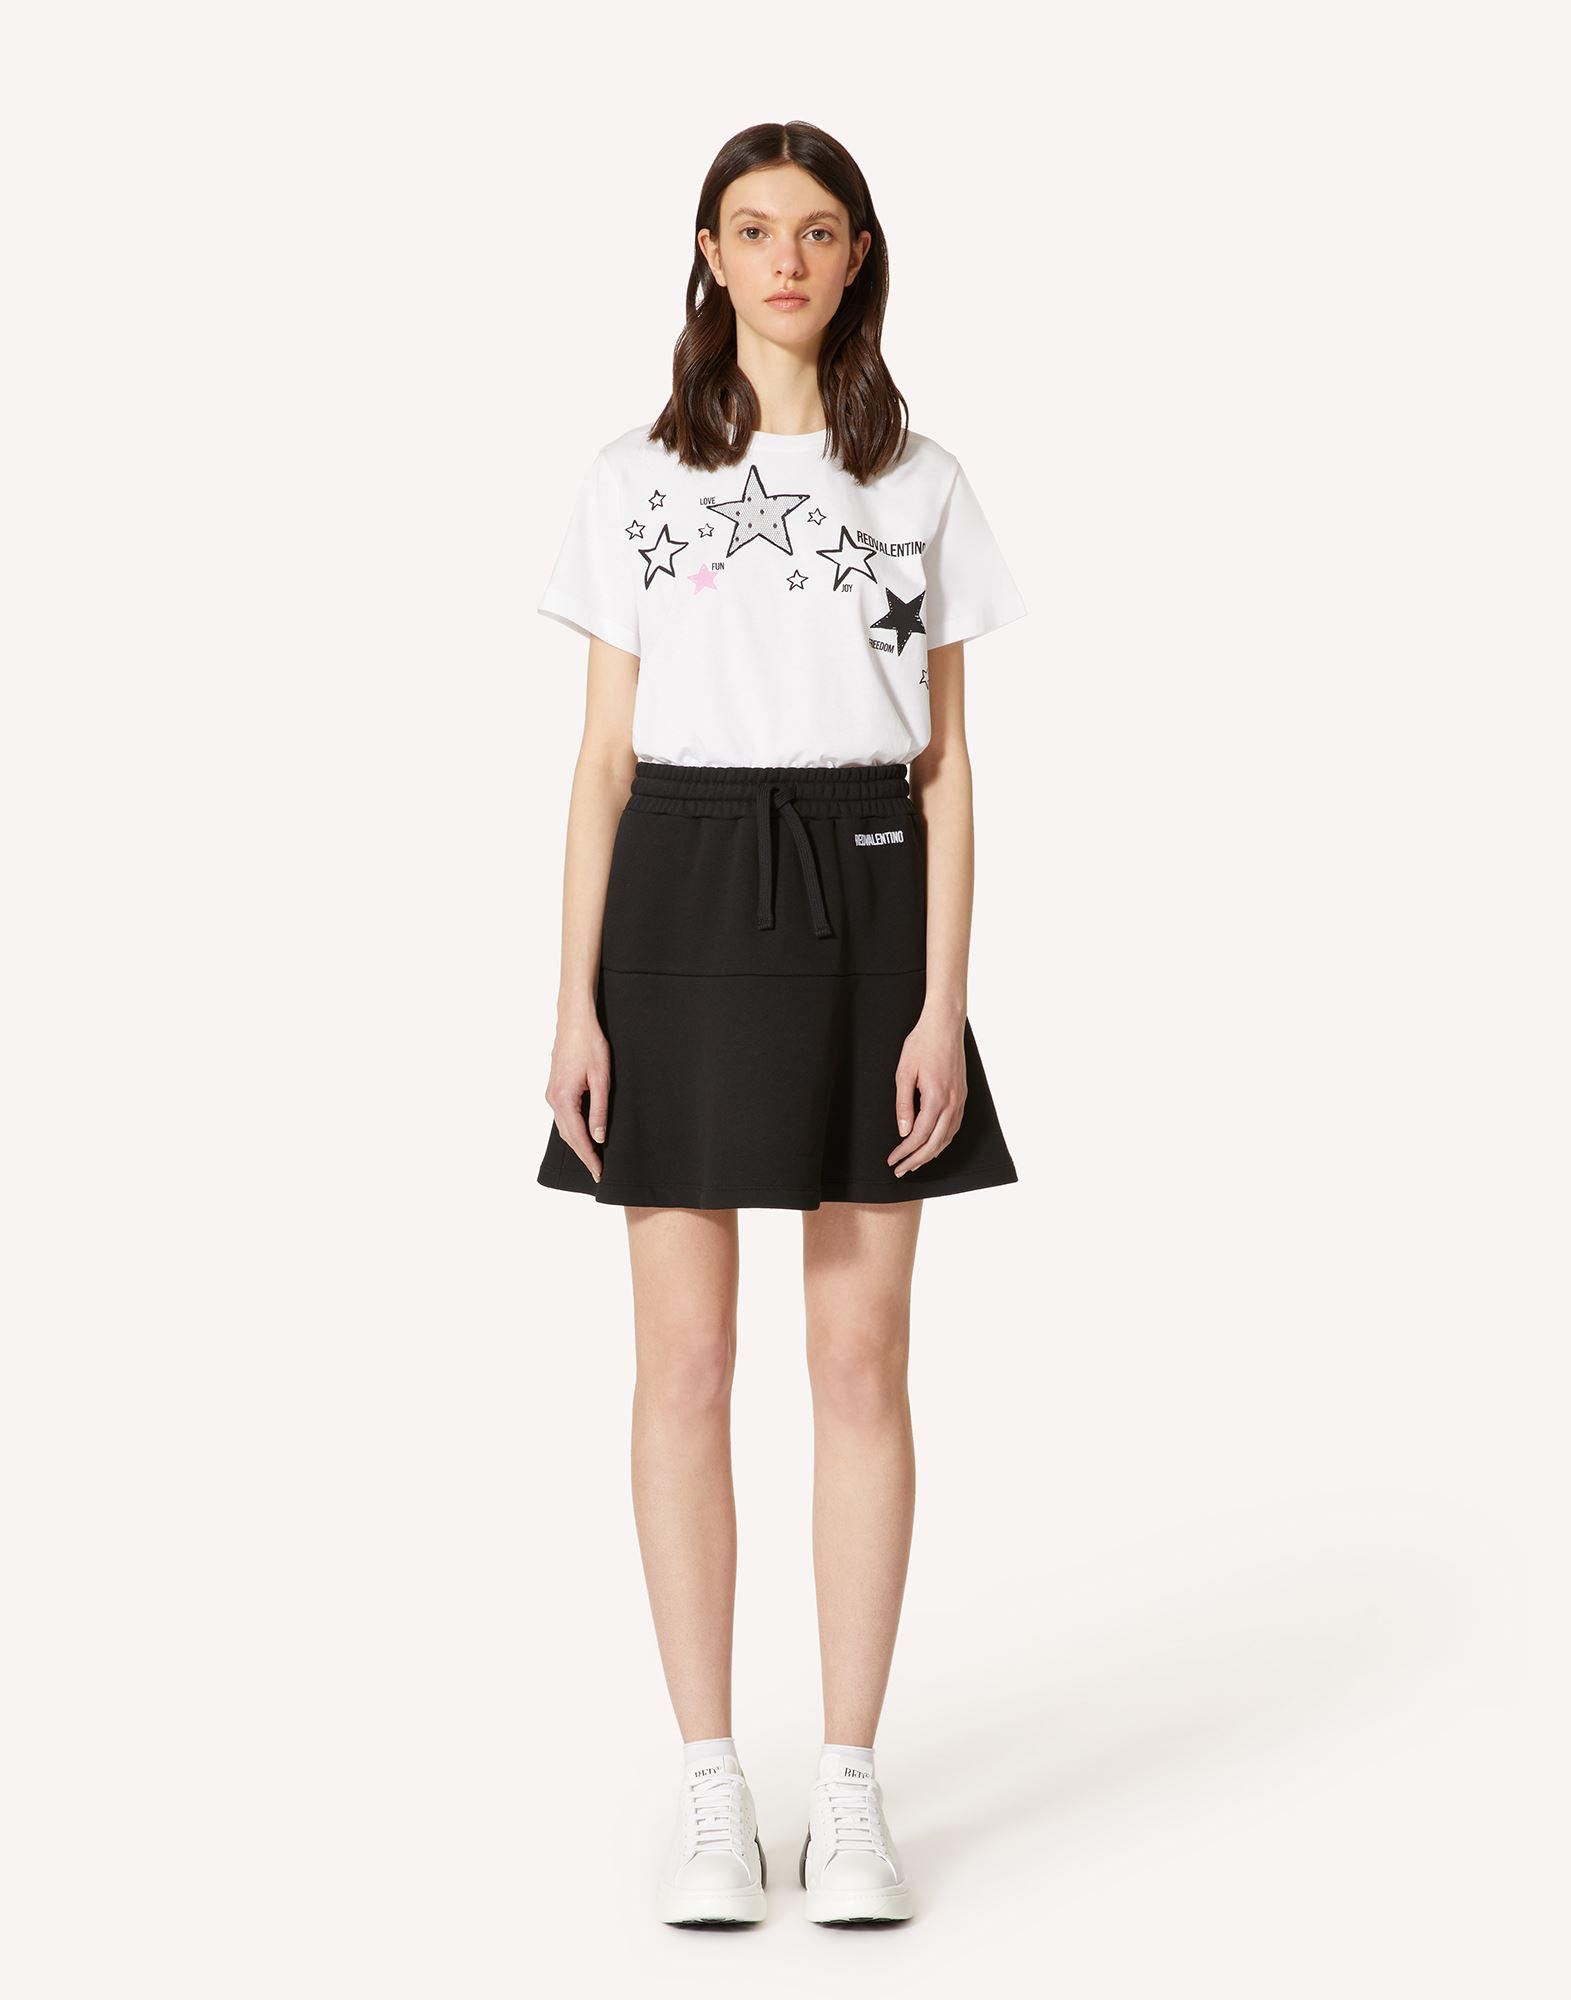 LIMITED EDITION JERSEY SKIRT